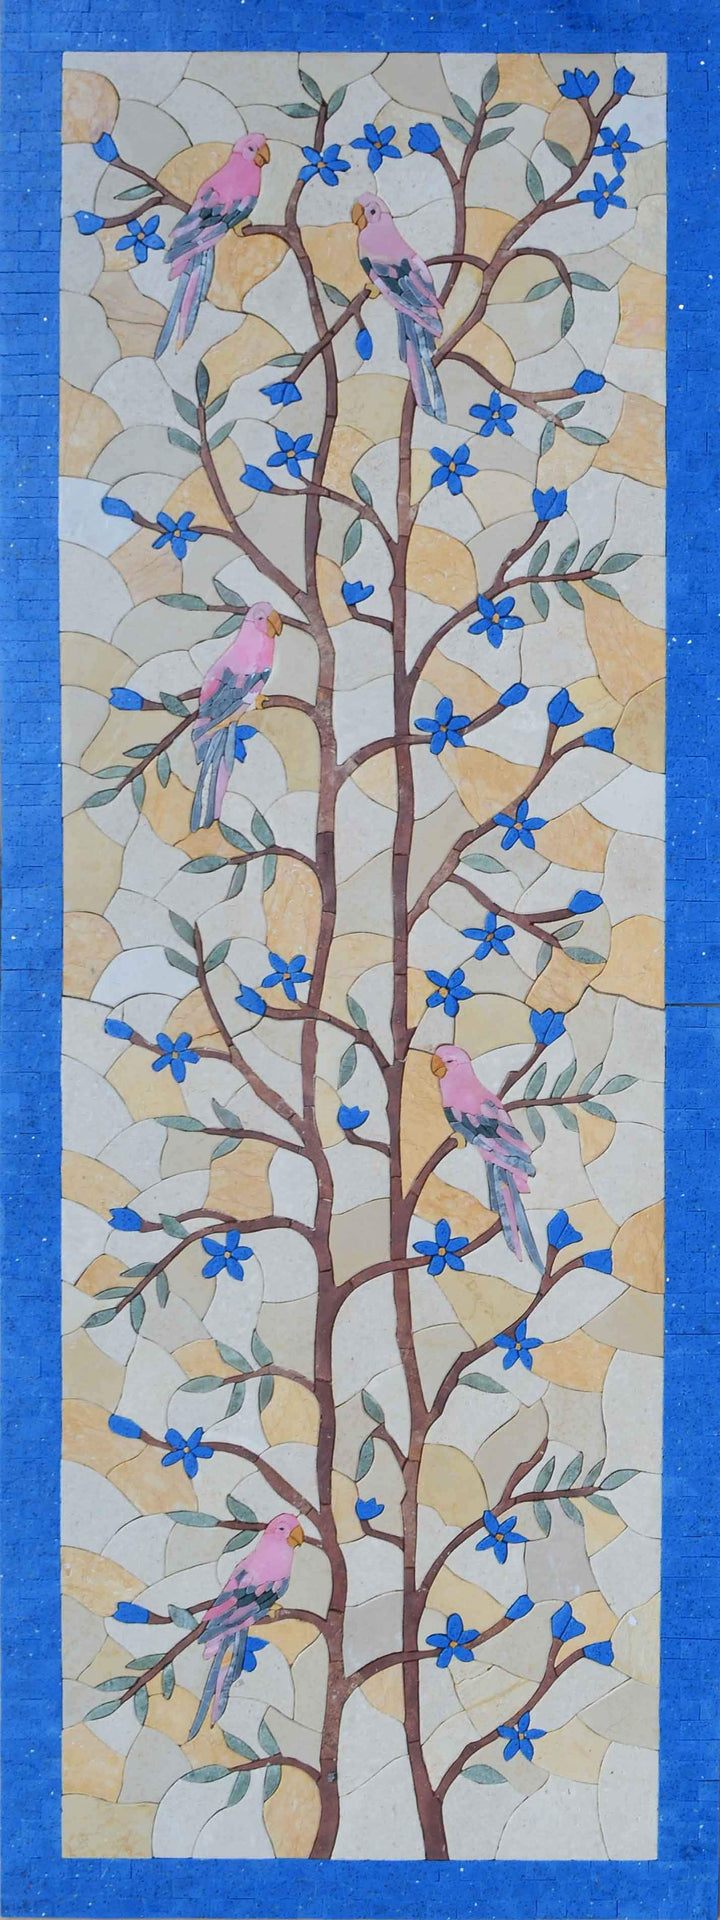 Mosaic Mural - Birds On Tree Branch